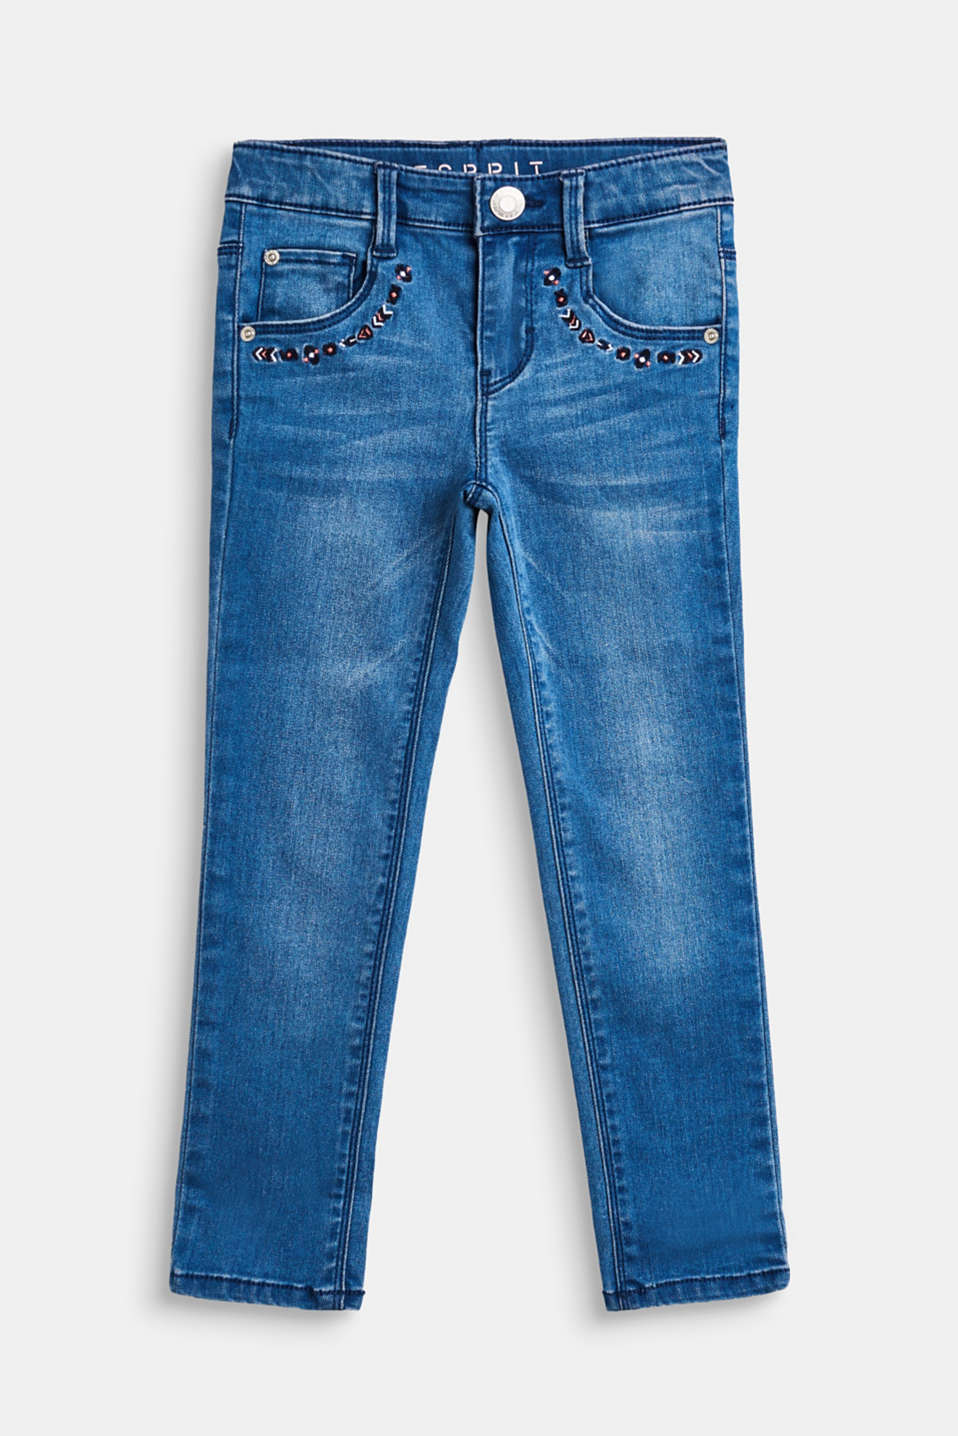 Esprit - Stretch-Jeans mit Ethno-Stickerei